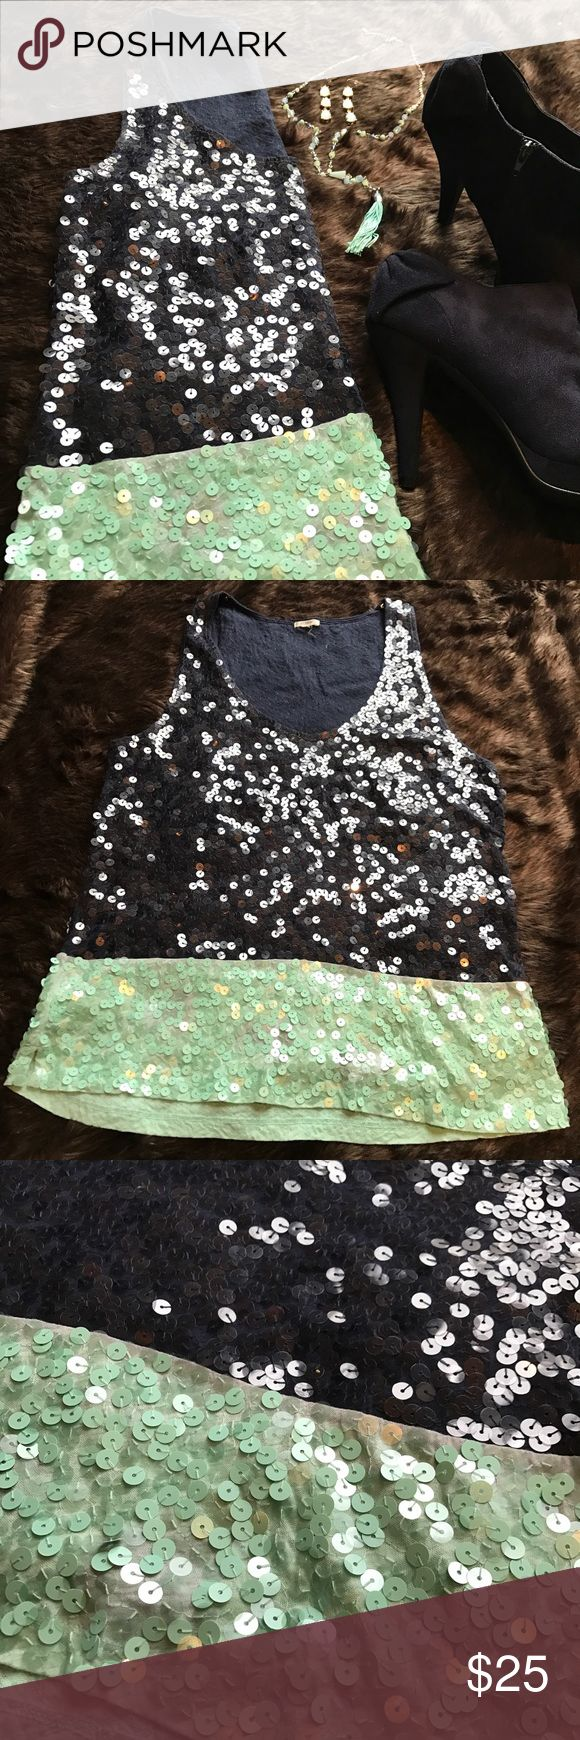 J. Crew Color Block Sequin Tank Top J. Crew Color Block Sequin Tank Top • Size small • 100% cotton with 100% silk trim • Navy blue and Seafoam green color block design • This cotton classic is wrapped in sparkle with opaque and clear sequins covering every inch of fabric • Slim fit that gives way to a flowy bottom with side slits for a fun flirty look • Hand wash • Like New Condition J. Crew Tops Tank Tops